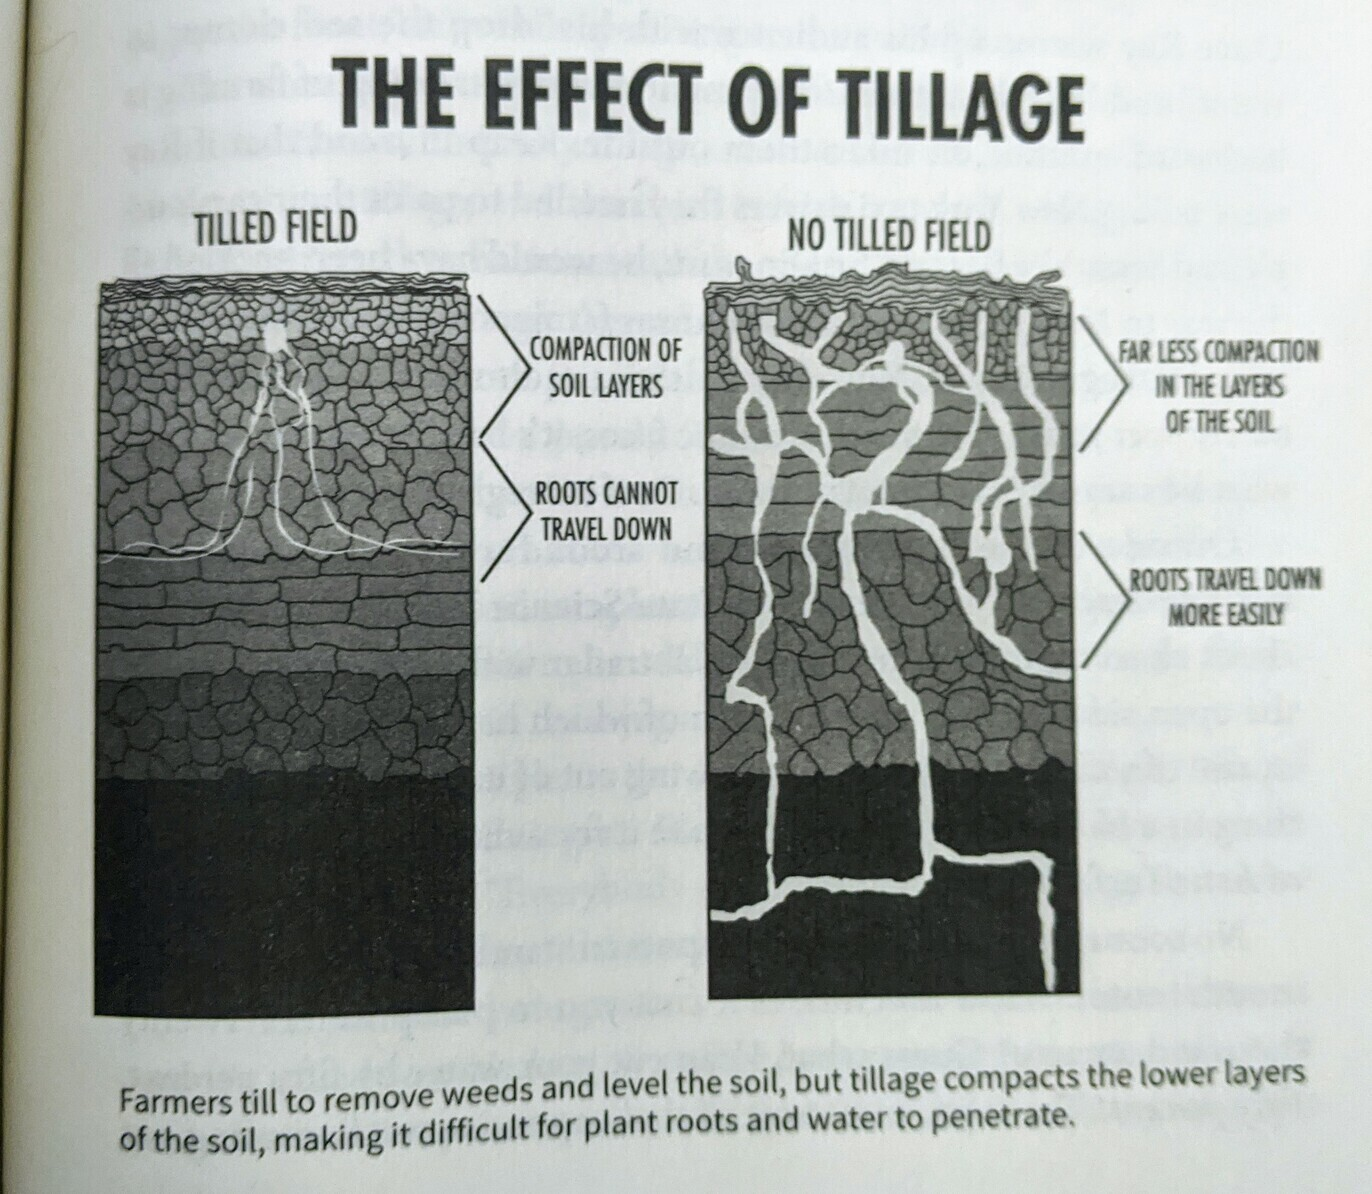 A graphic showing how tillage increases soil compaction, making it difficult for roots to penetrate.